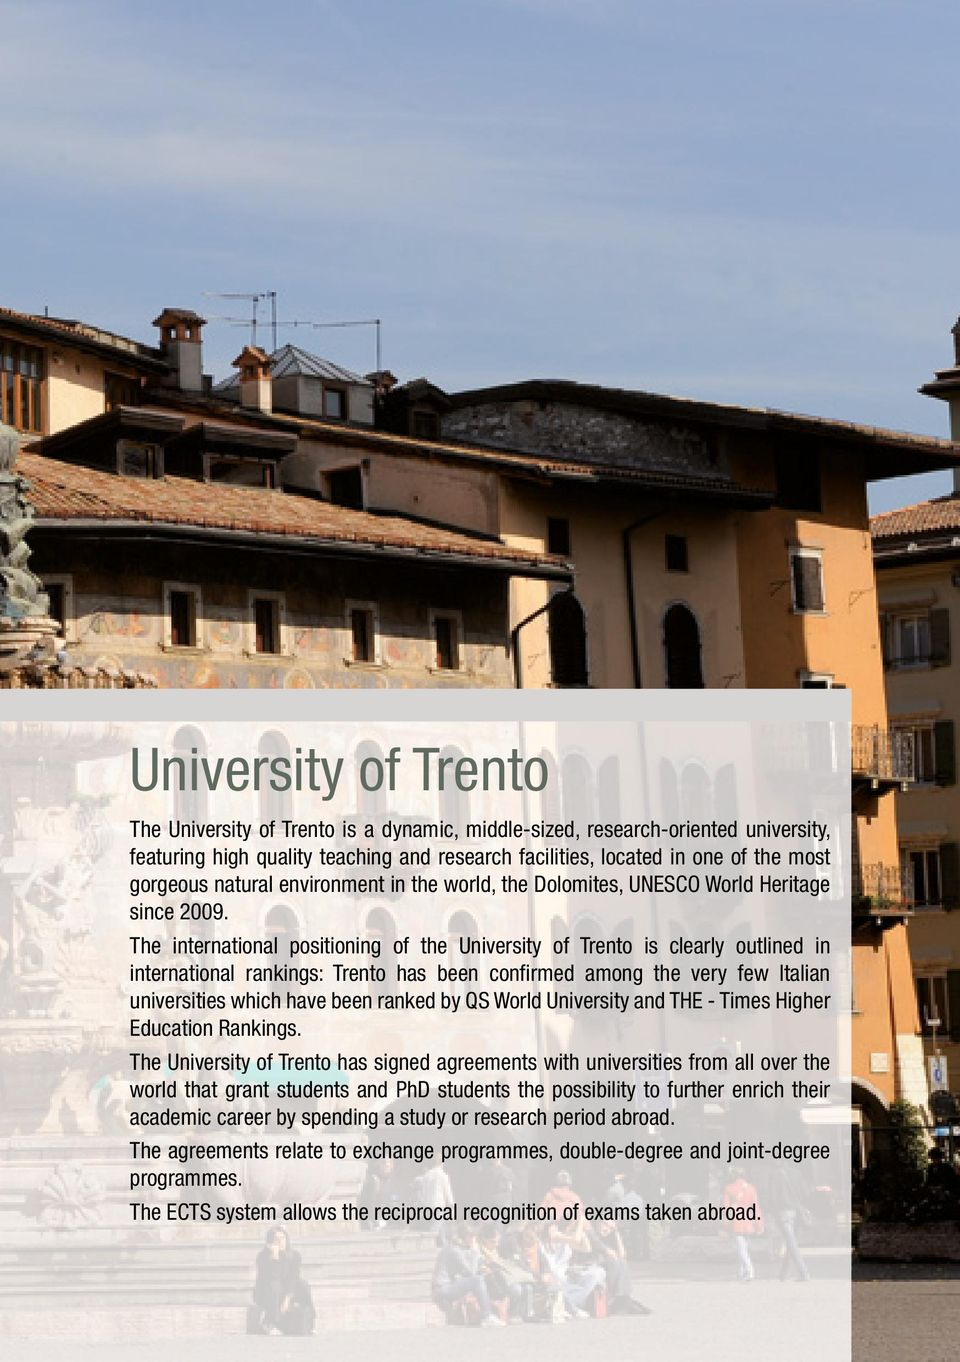 The international positioning of the University of Trento is clearly outlined in international rankings: Trento has been confirmed among the very few Italian universities which have been ranked by QS